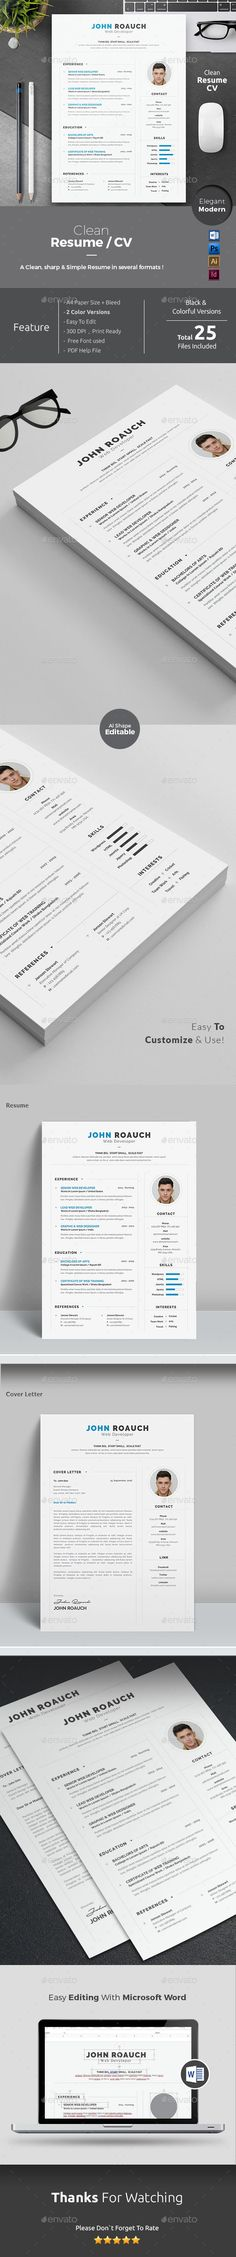 49 best Best CV Ever! images on Pinterest Productivity, Resume